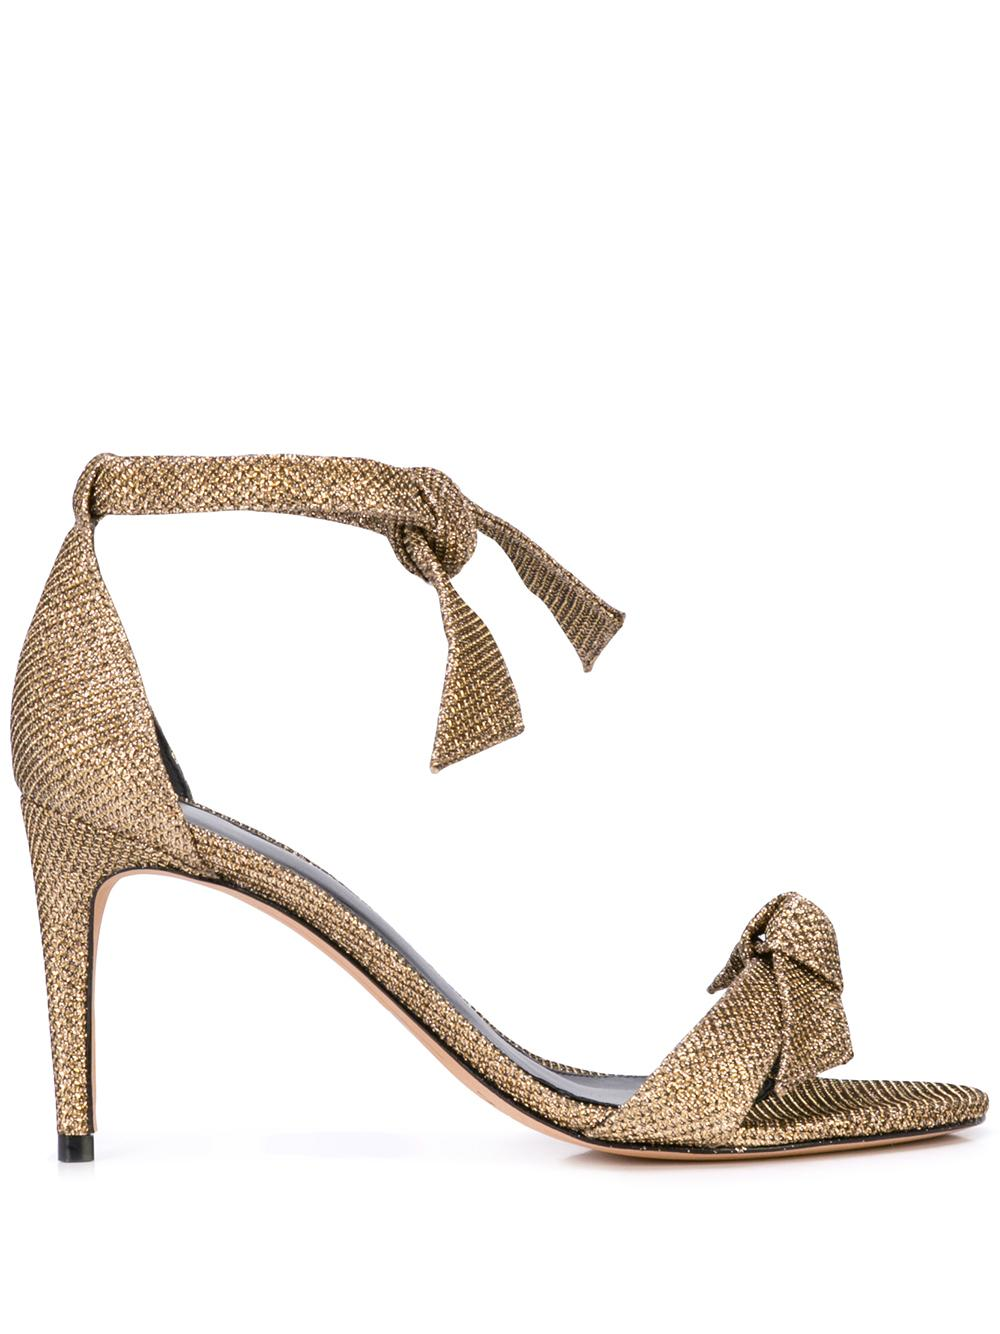 Clarita 75mm Metallic Sandal Item # B0018780330016